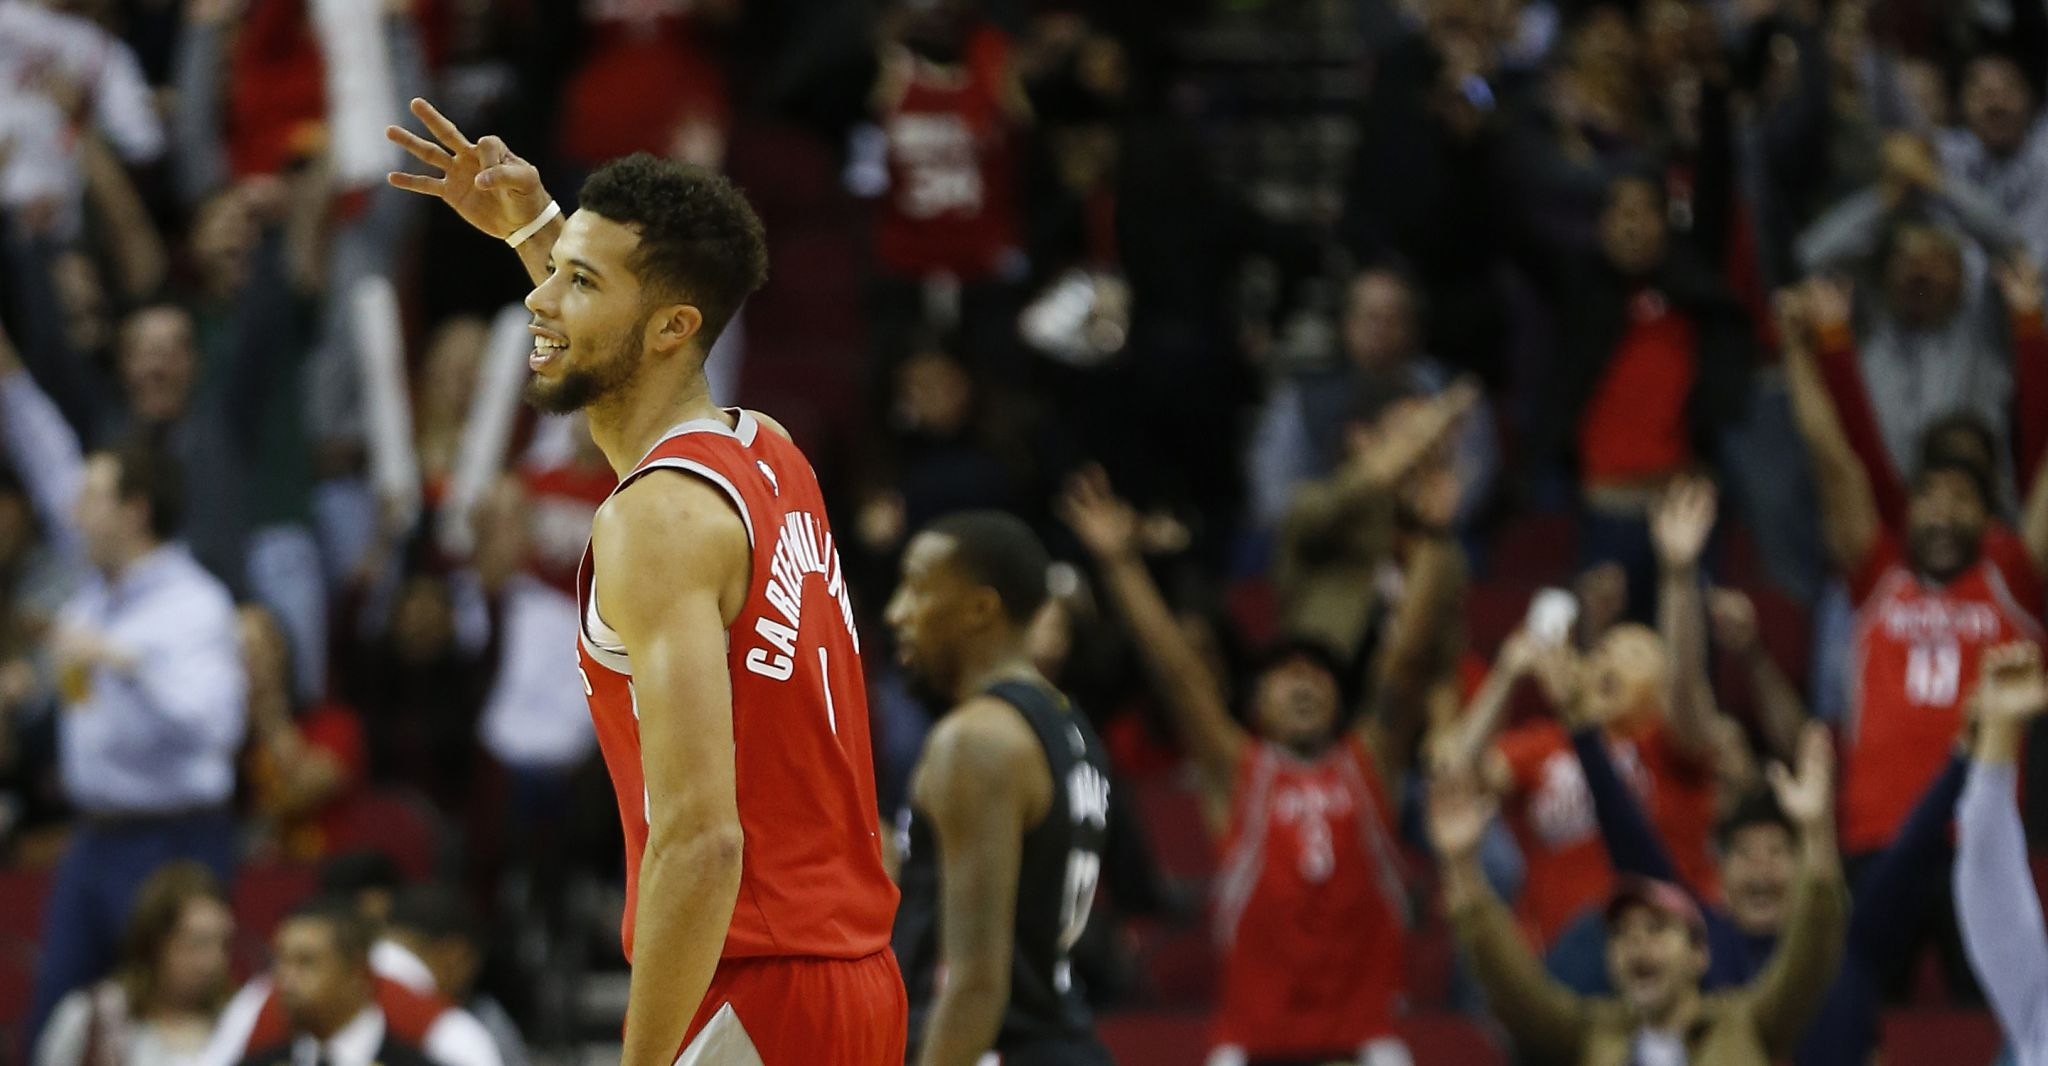 Rockets guard Michael Carter-Williams  work on shot pays off with  record-setter - San Antonio Express-News 375ecfa7f